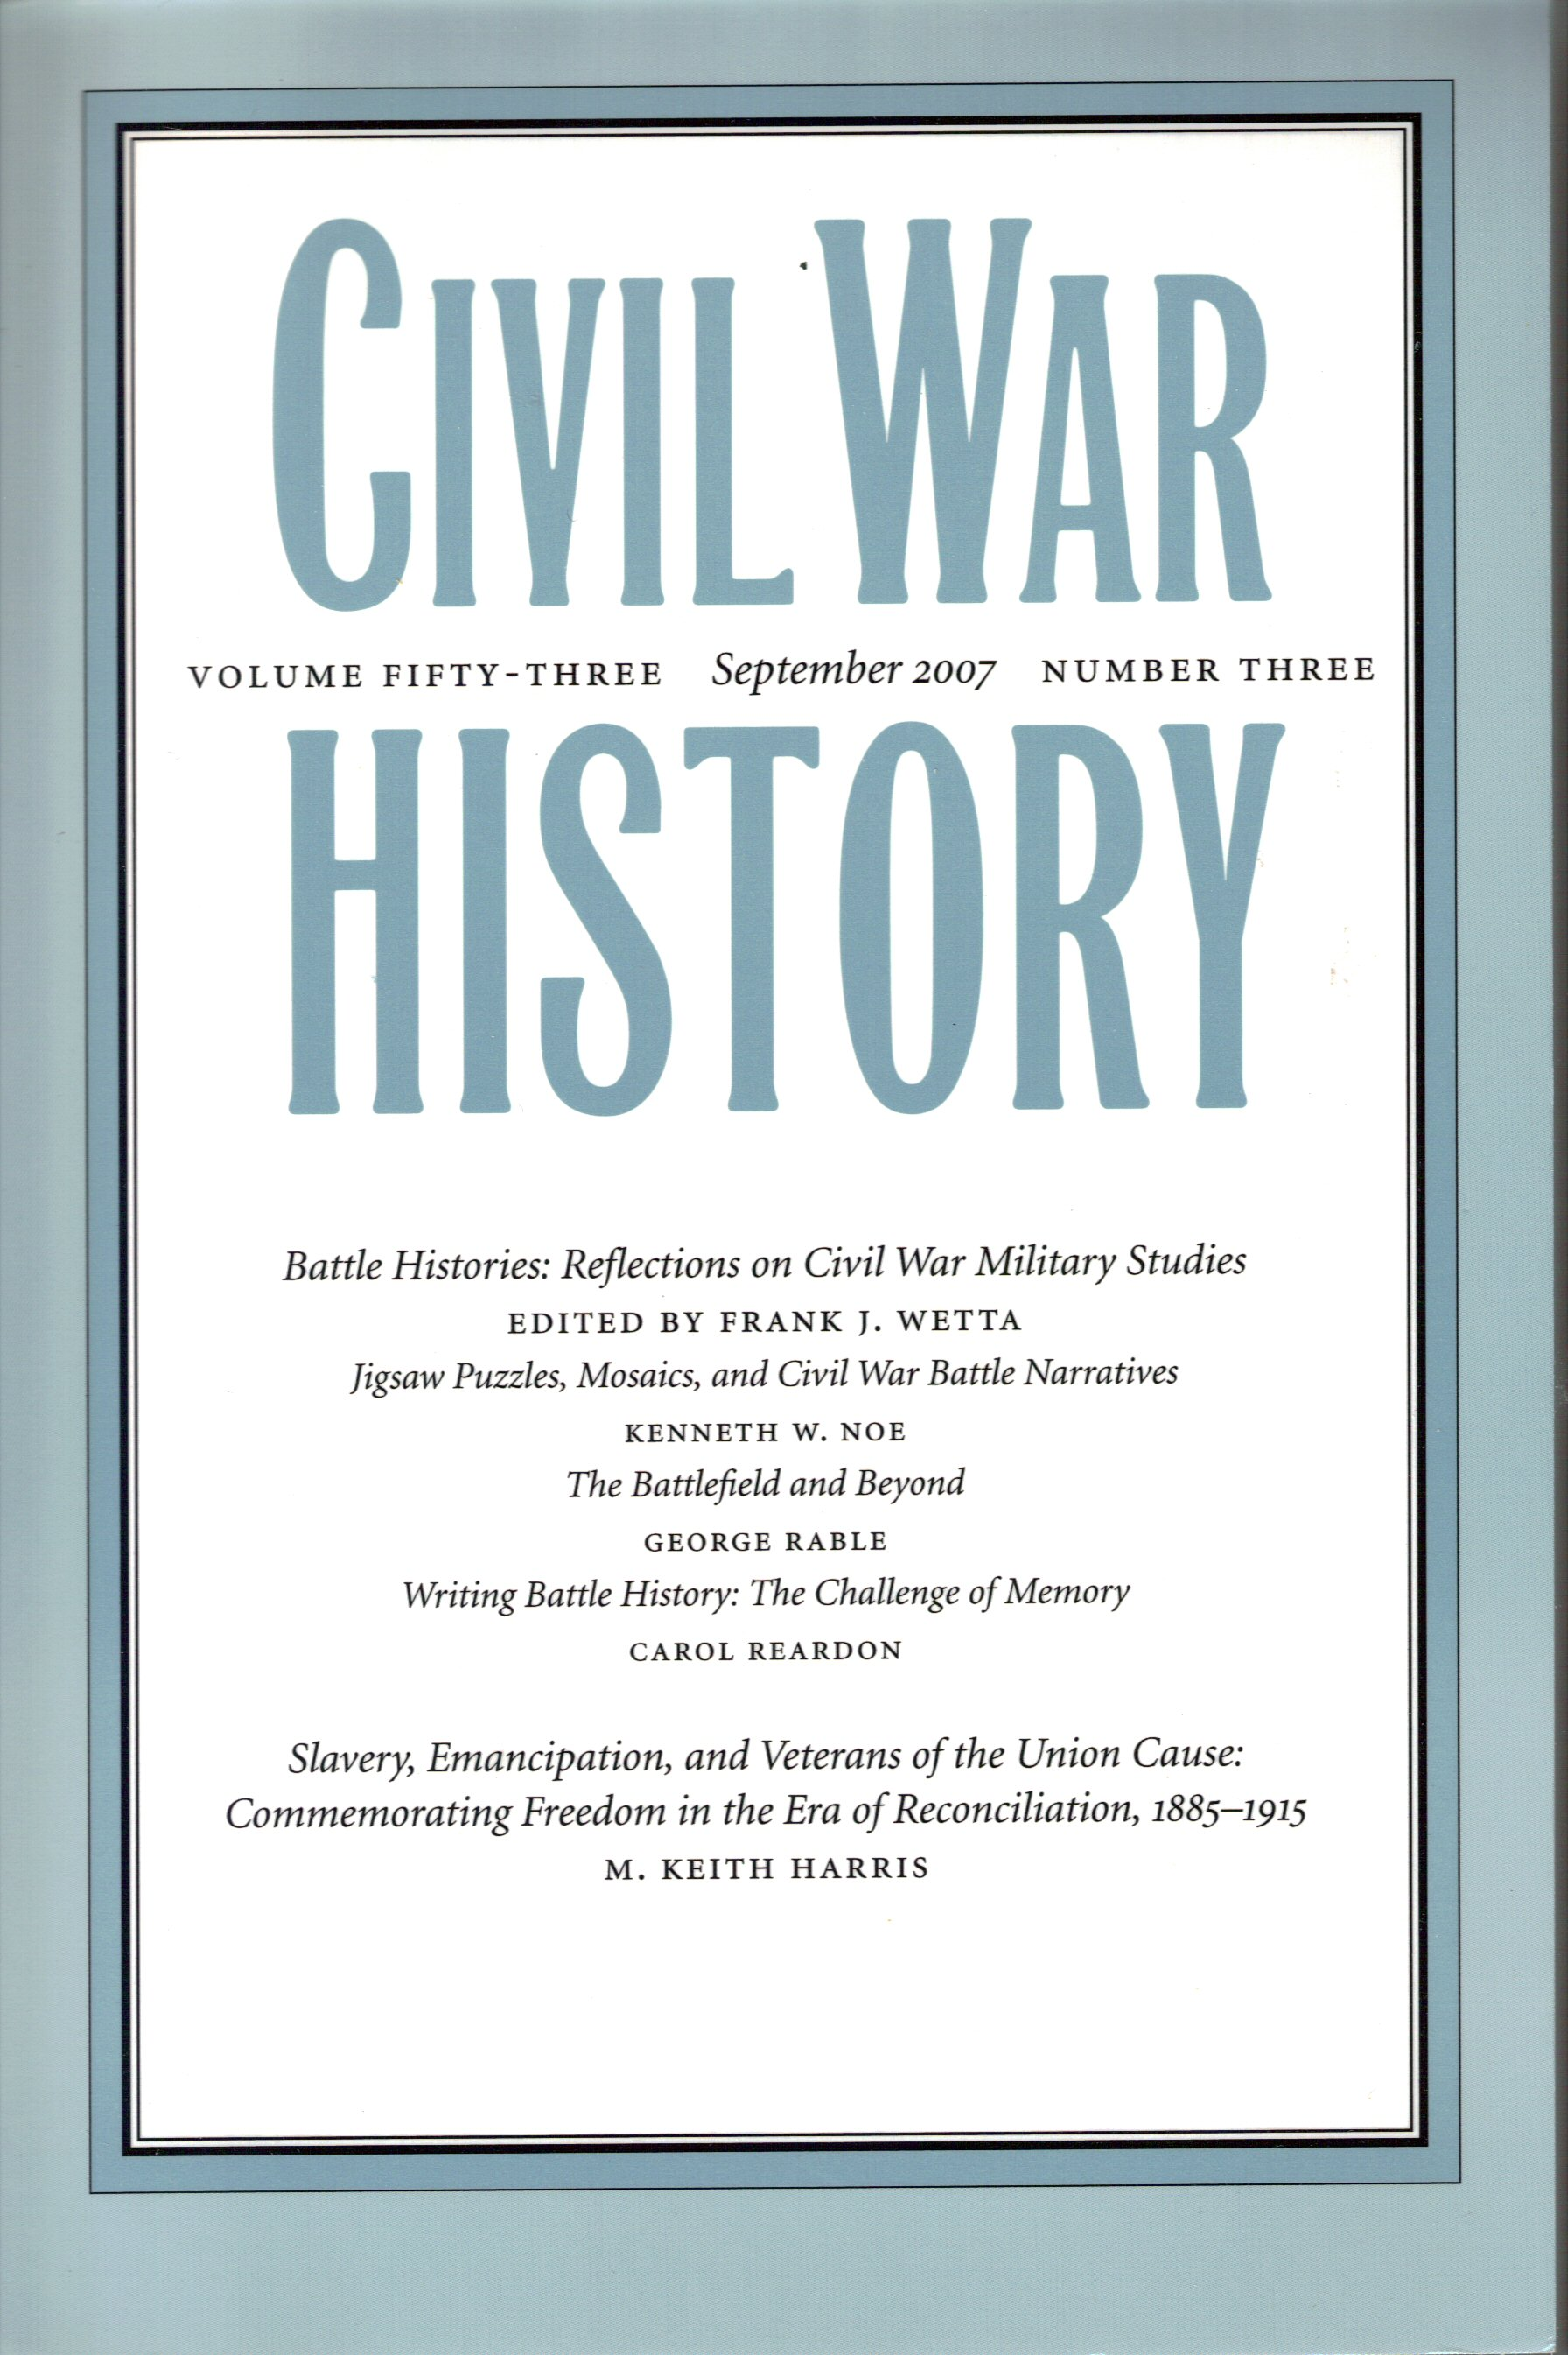 Civil War History, Volume 53, Number 3 (September 2007)